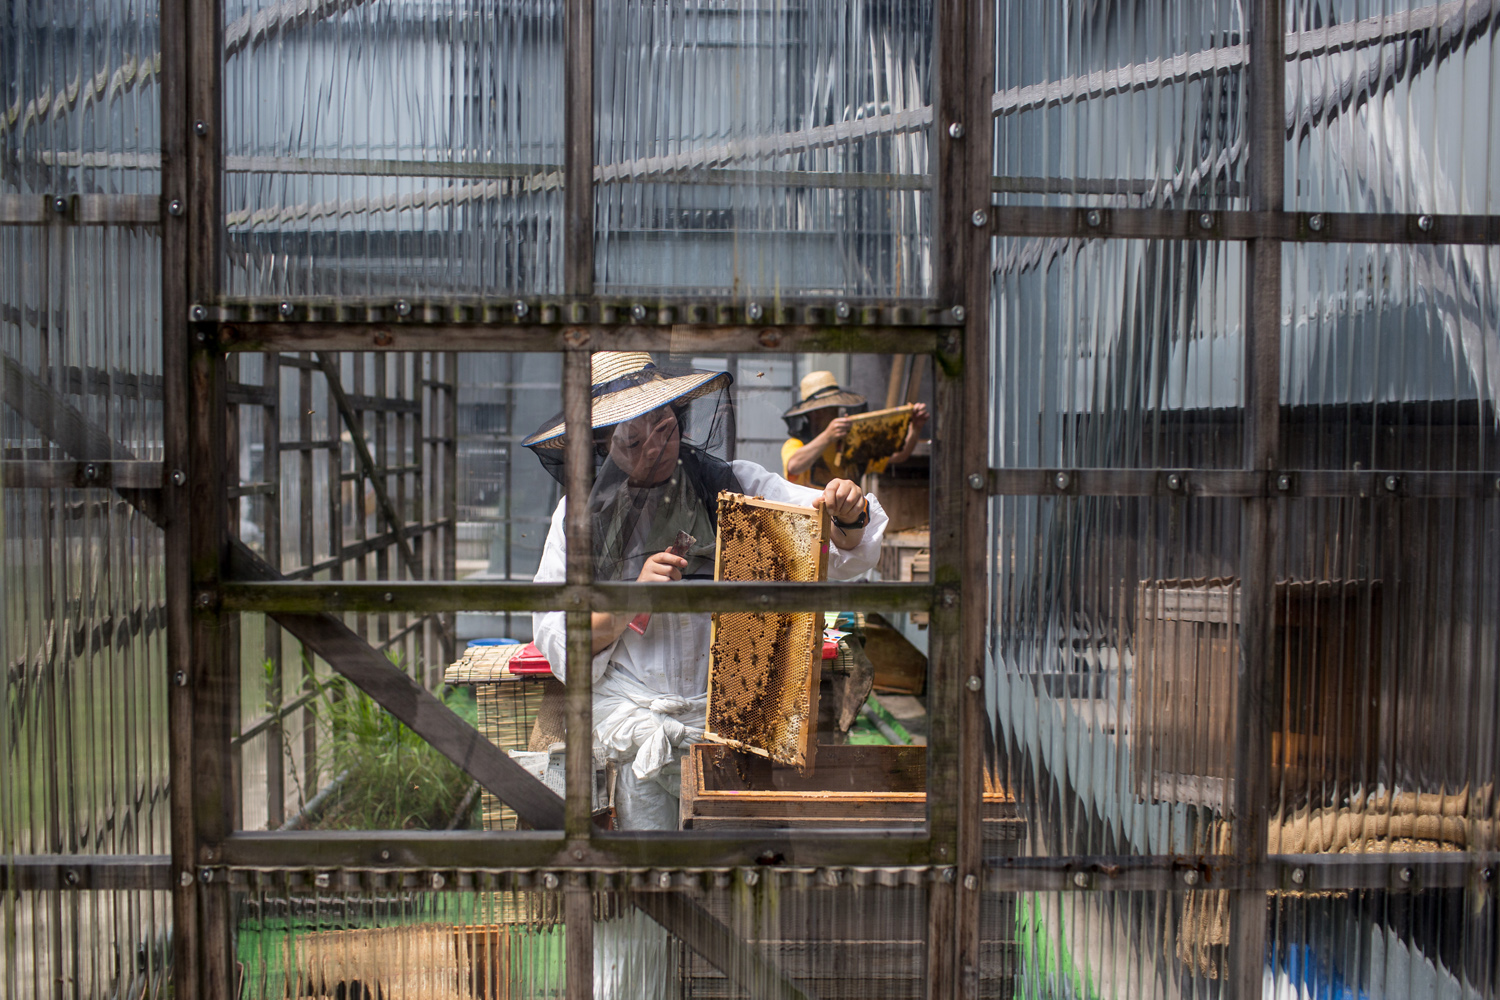 Jun. 17, 2014. Beekeeper Yamamoto Maoko removes bees from a frame at the rooftop bee hives of the Ginza Honey Bee Project in Tokyo, Japan.